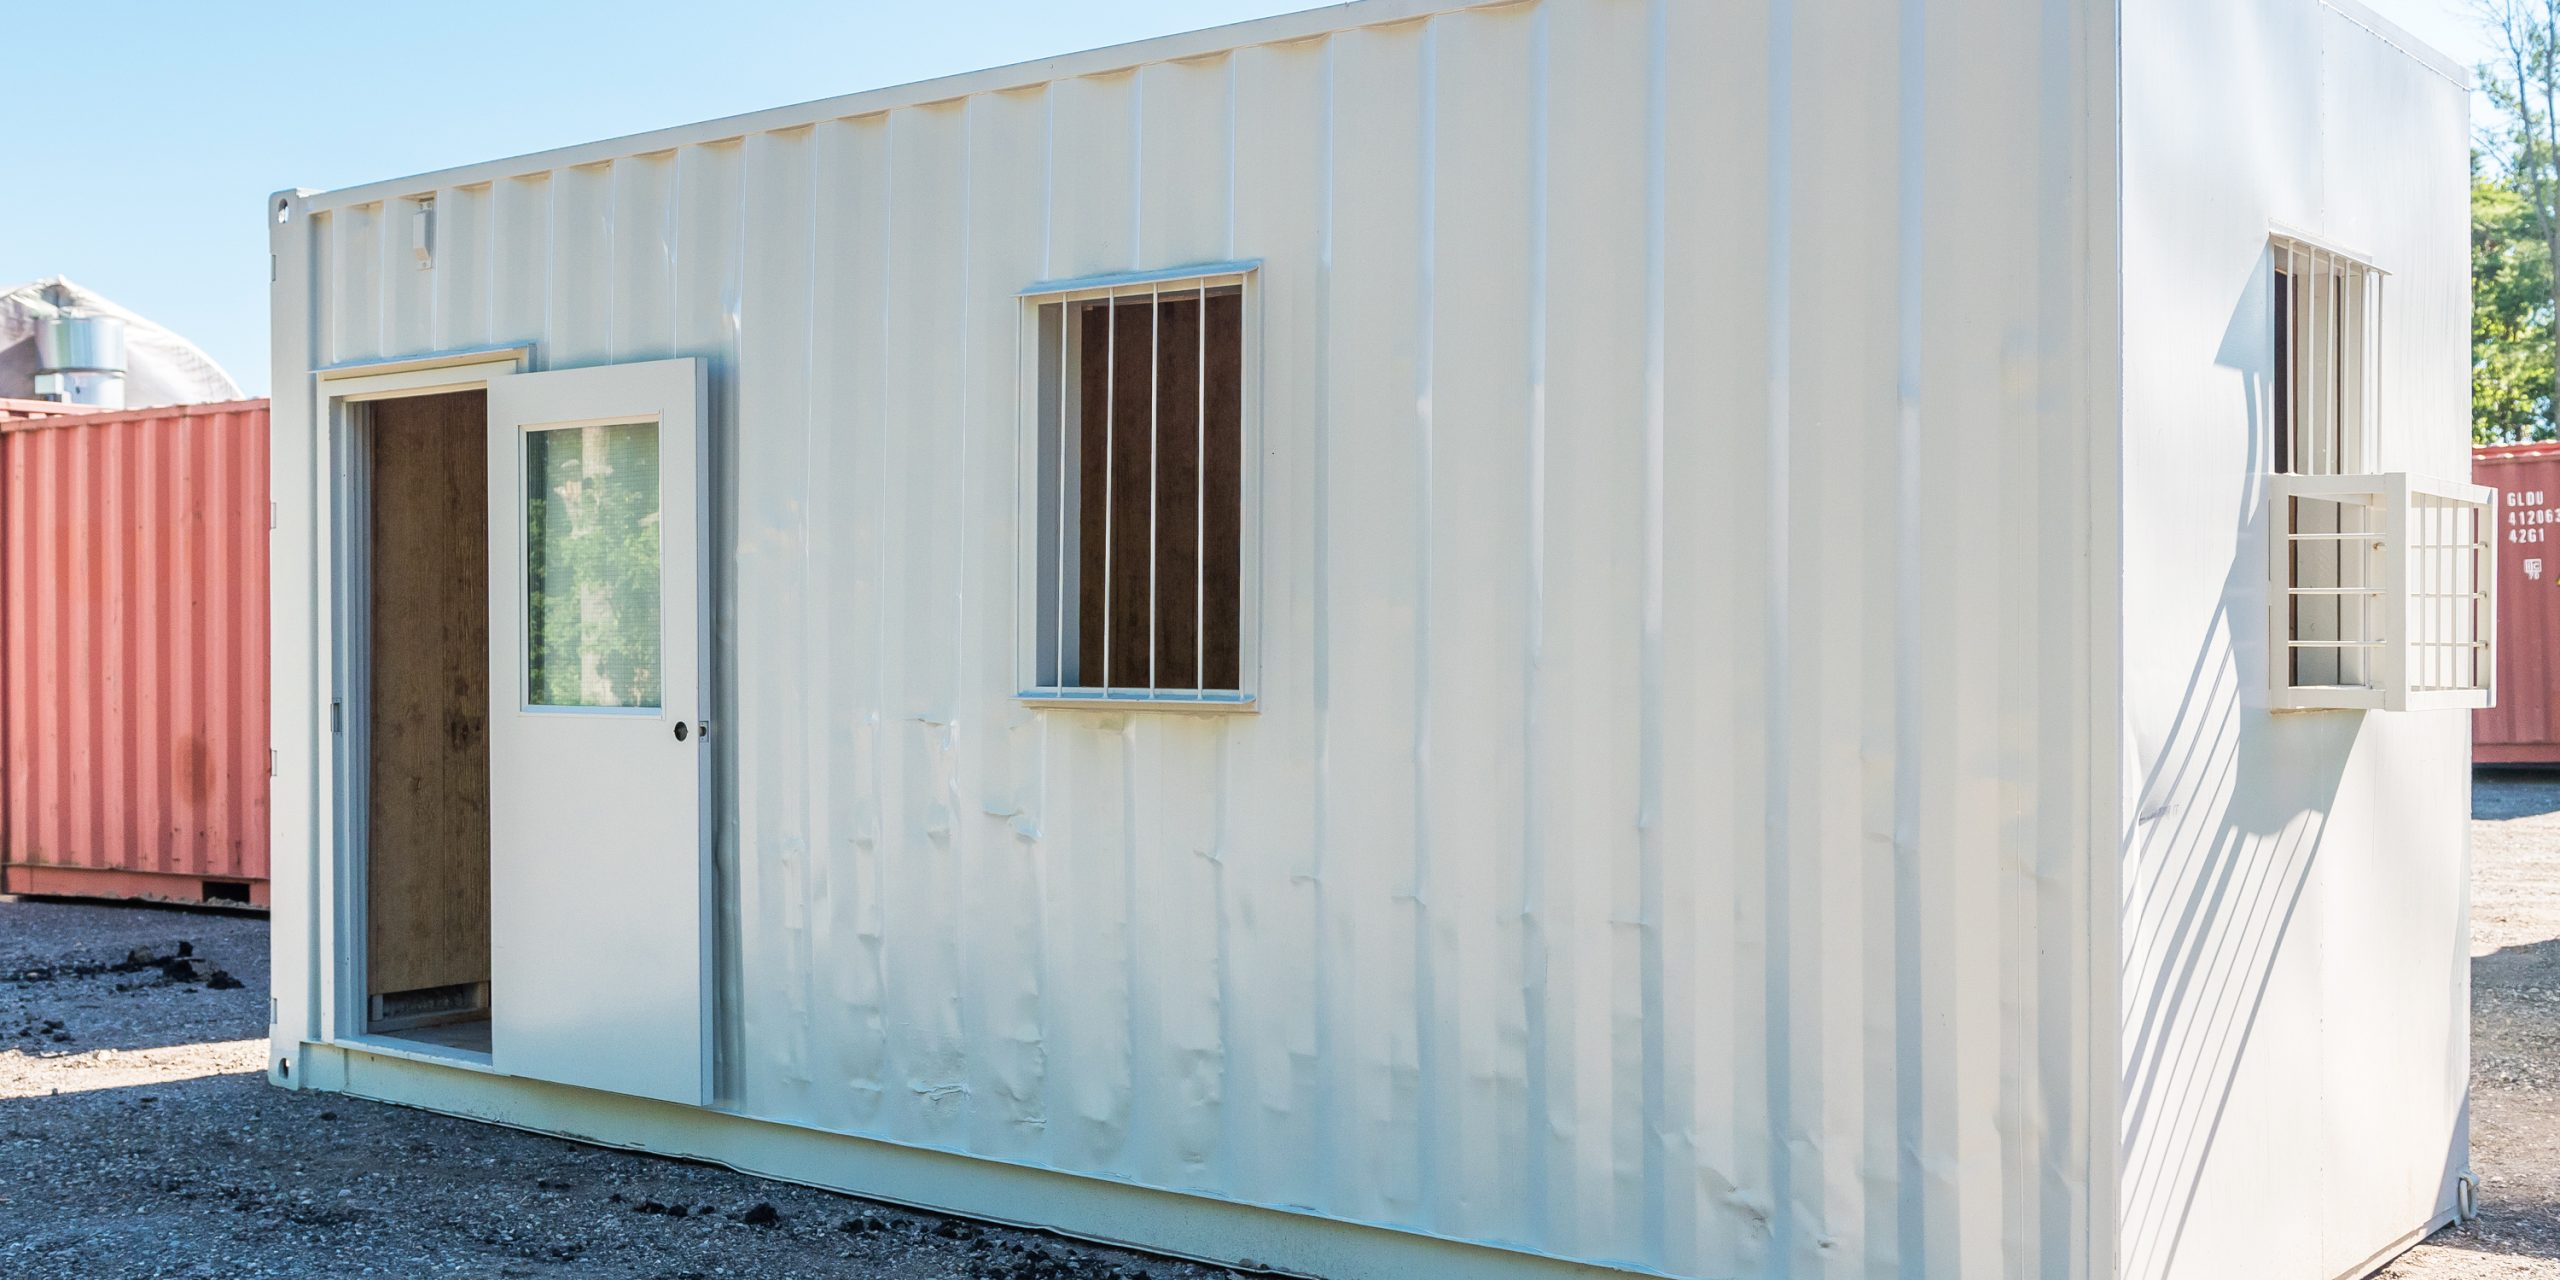 TargetBox - Article - Shipping Containers for Emergencies & Disaster Management